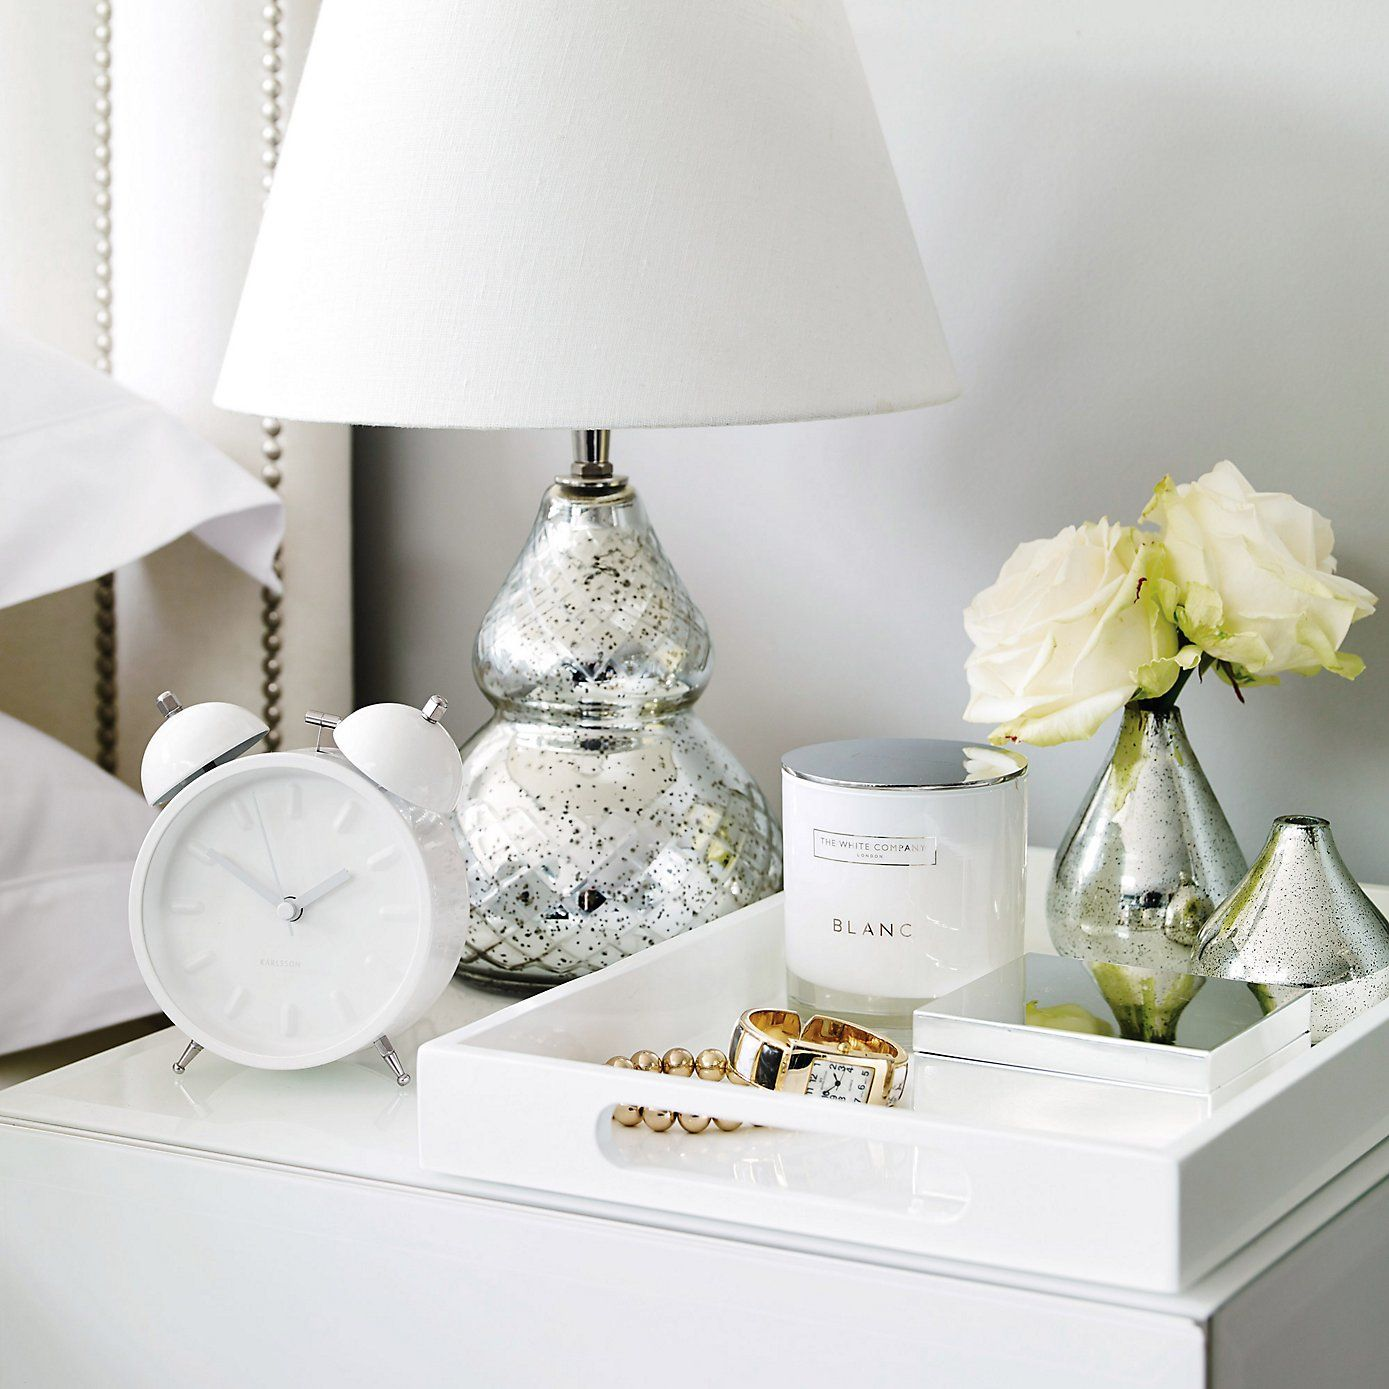 Bedside table decor tumblr - Decorative Accessories